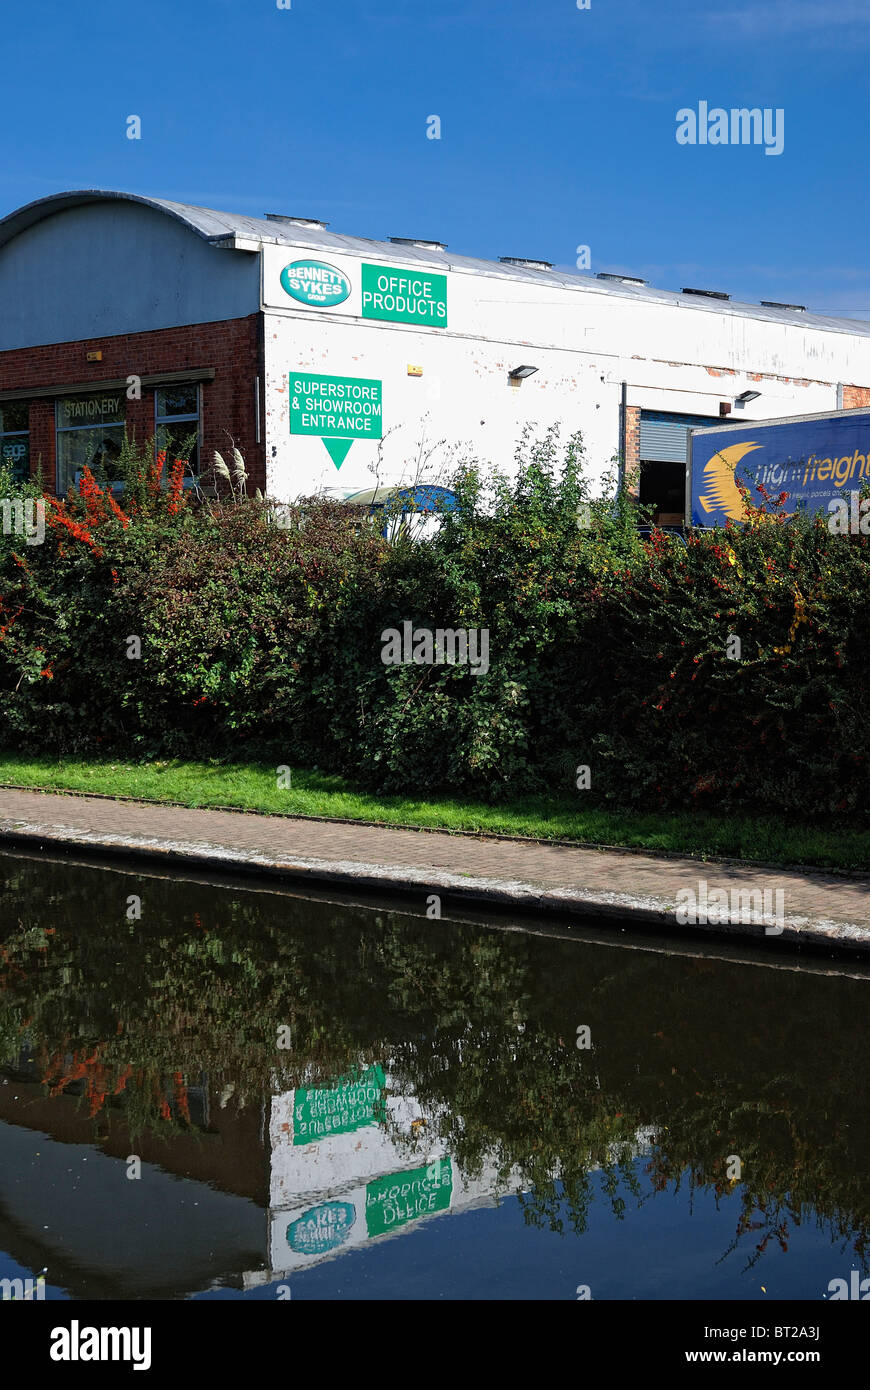 canal reflection sykes bennet office equipment showrooms - Stock Image